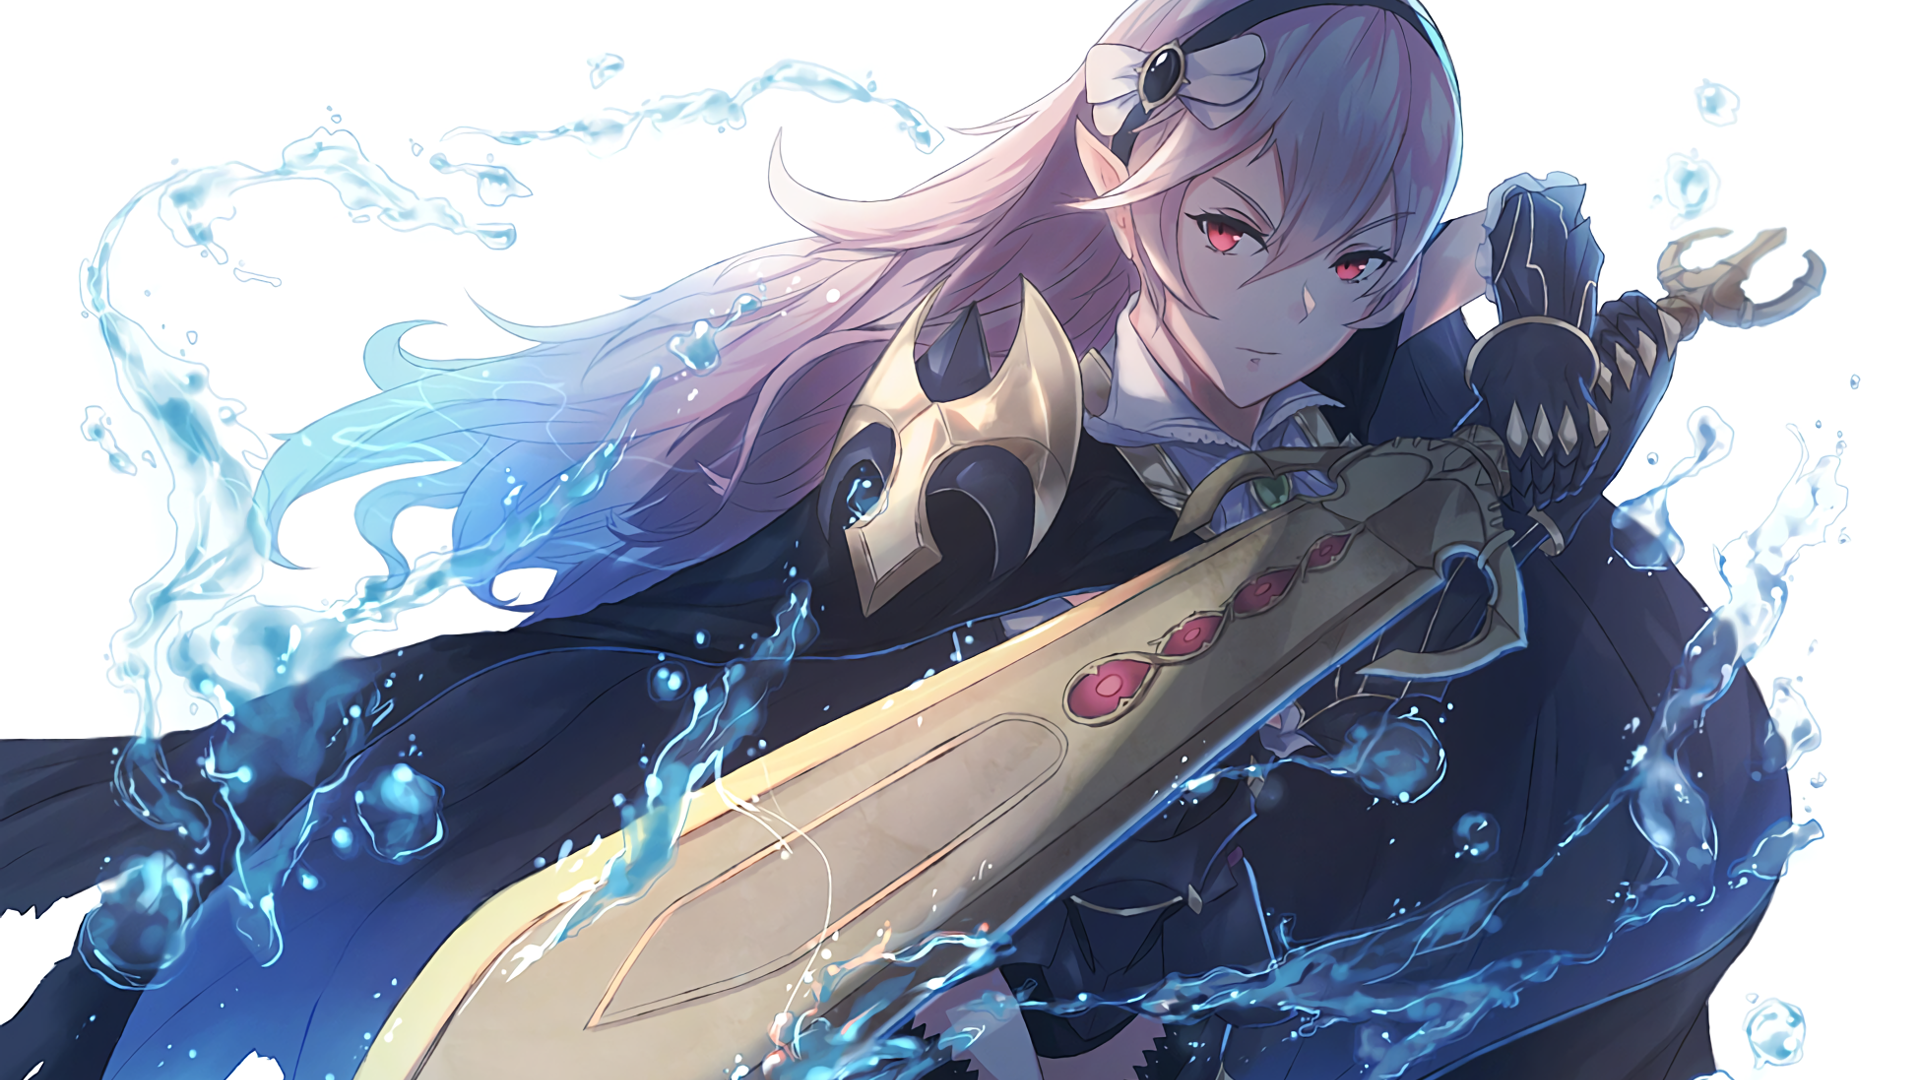 Fire Emblem Fates Wallpaper 1920x1080 Posted By Ryan Thompson